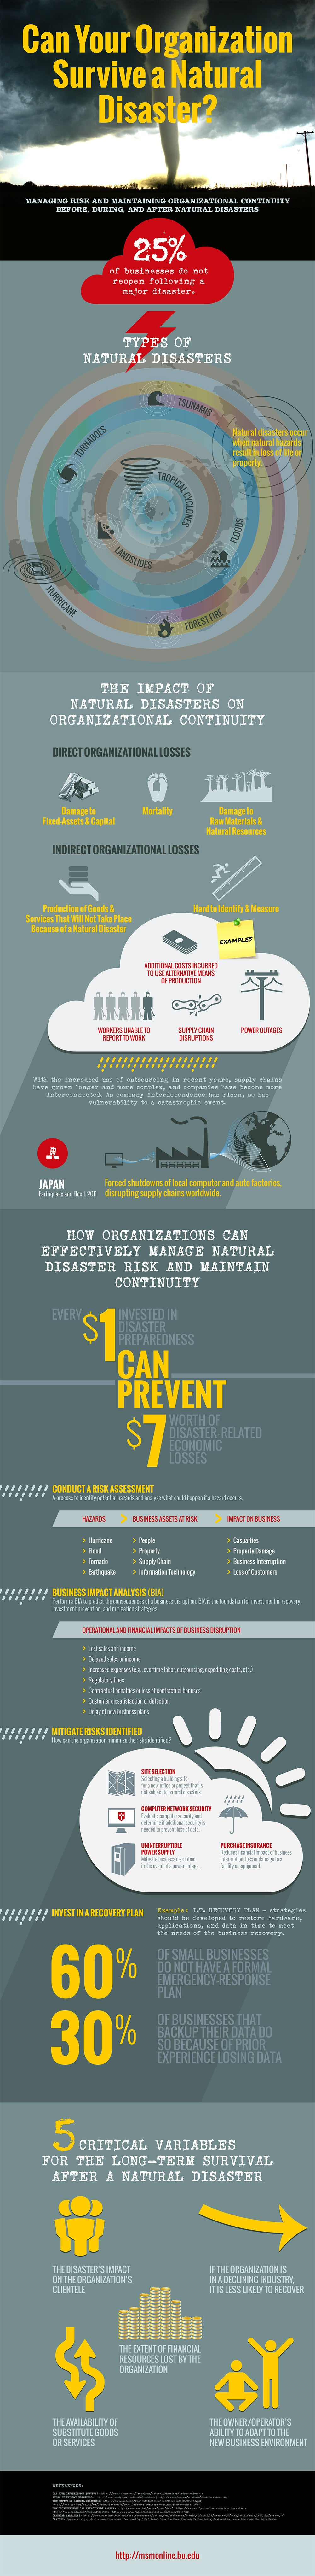 Natural Disasters Are Unavoidable. Is Your Business Ready? (Infographic)